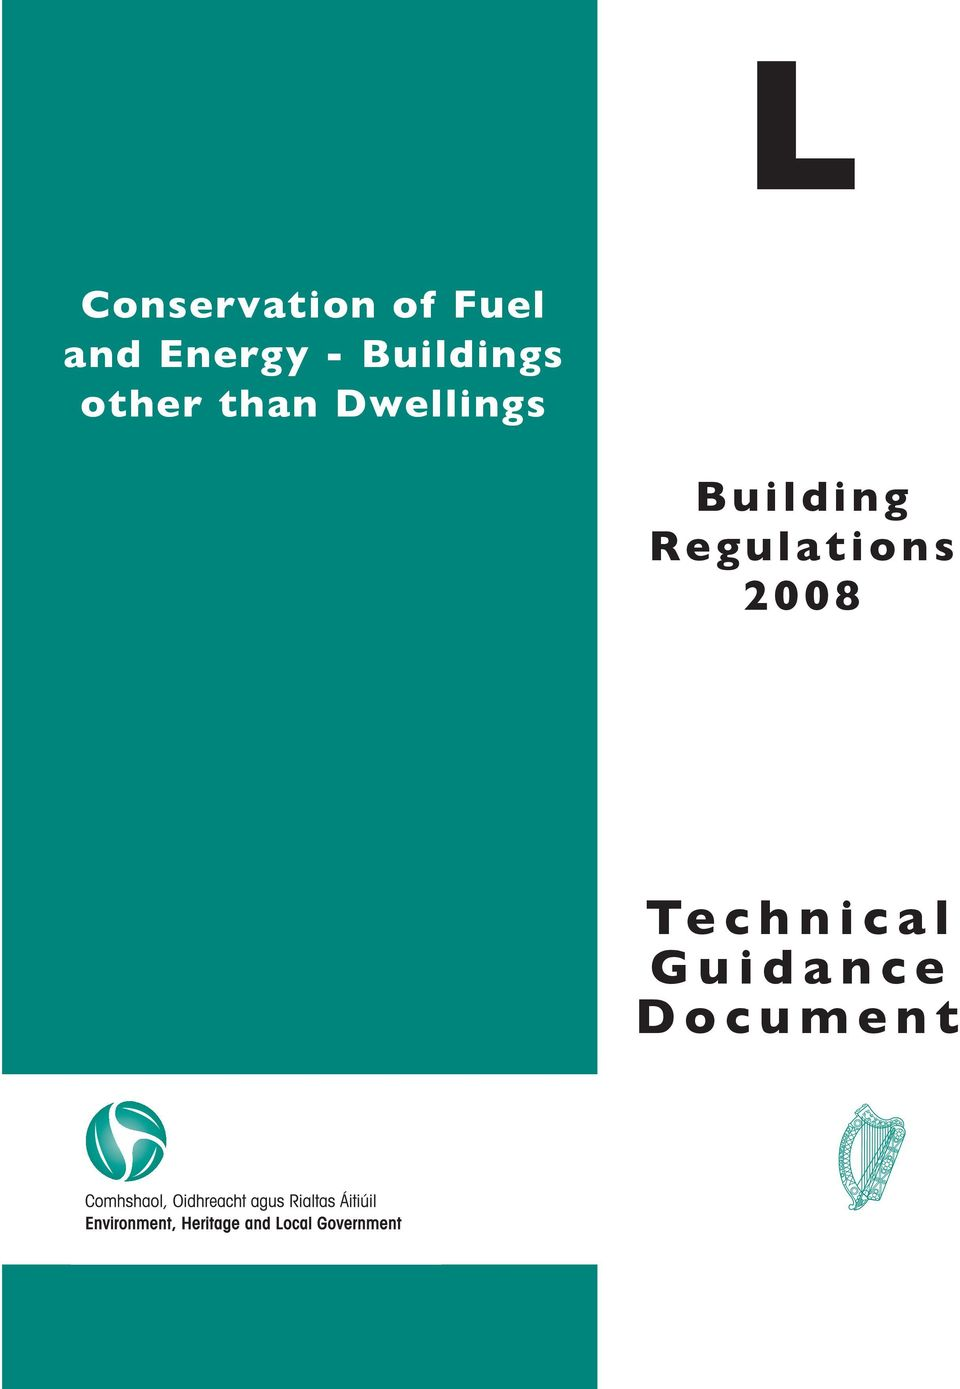 Building Regulations 2008 Te c h n